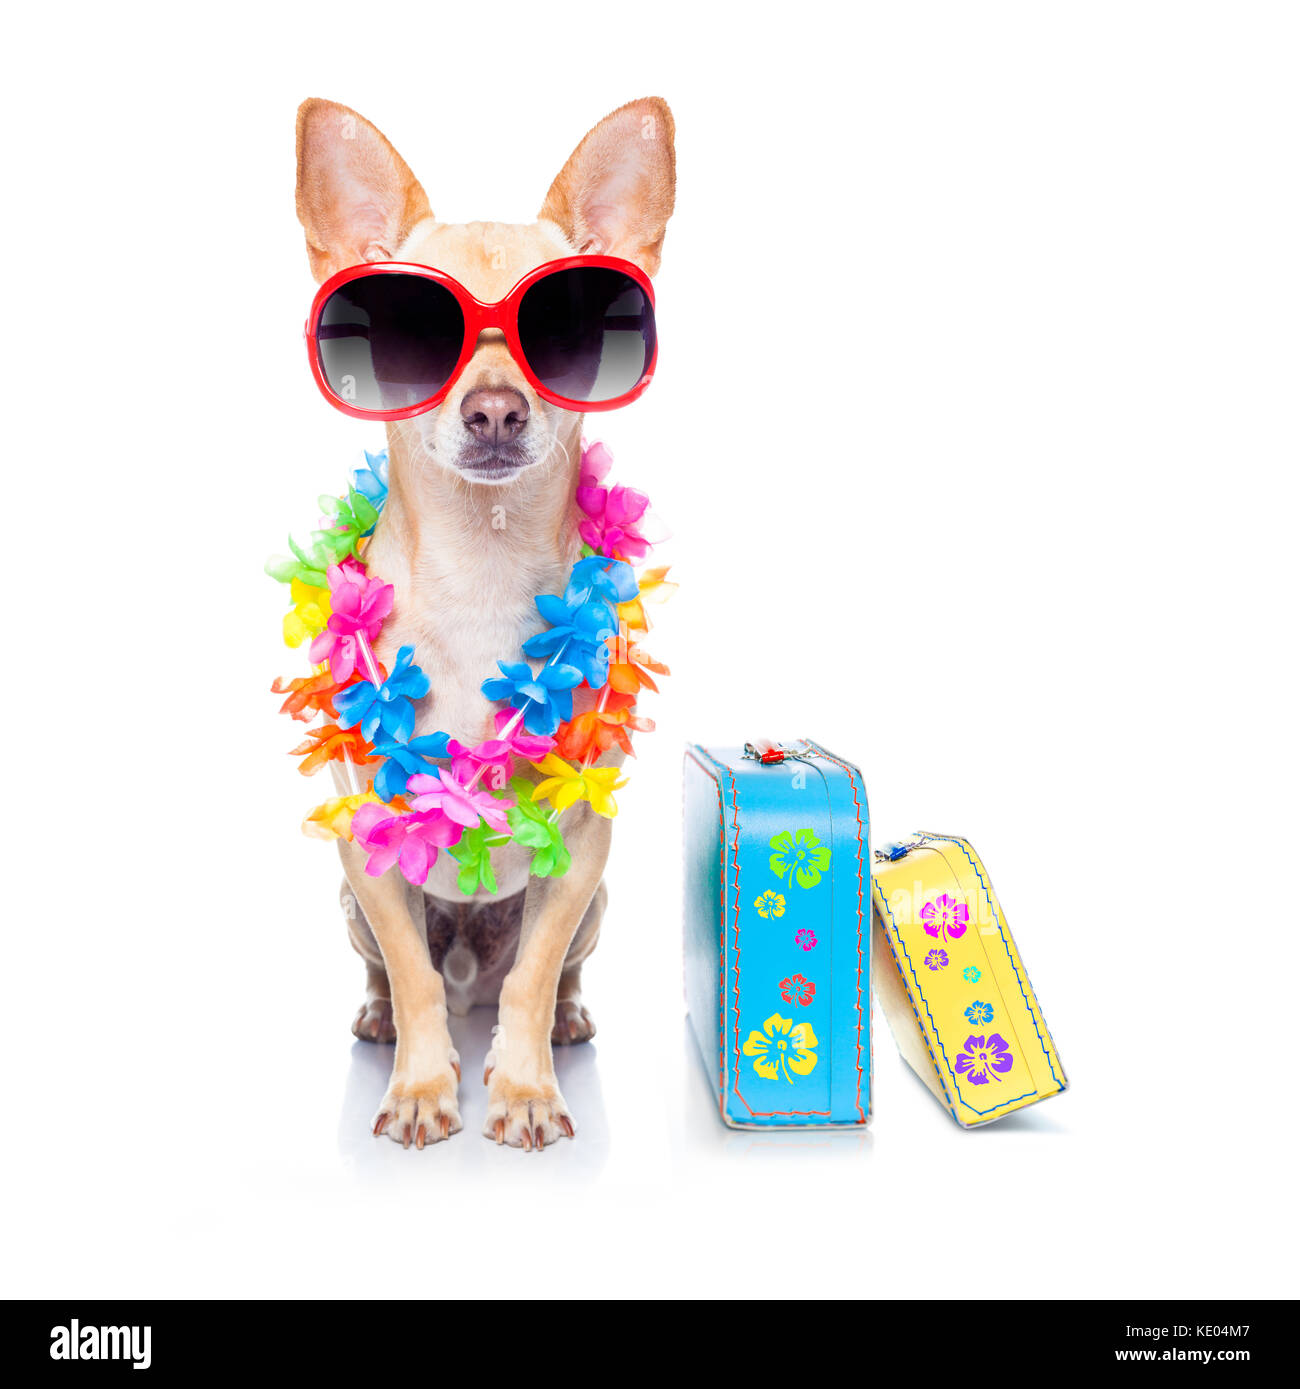 chihuahua dog with bags and luggage or baggage, ready for summer vacation holidays at the beach, isolated on white - Stock Image